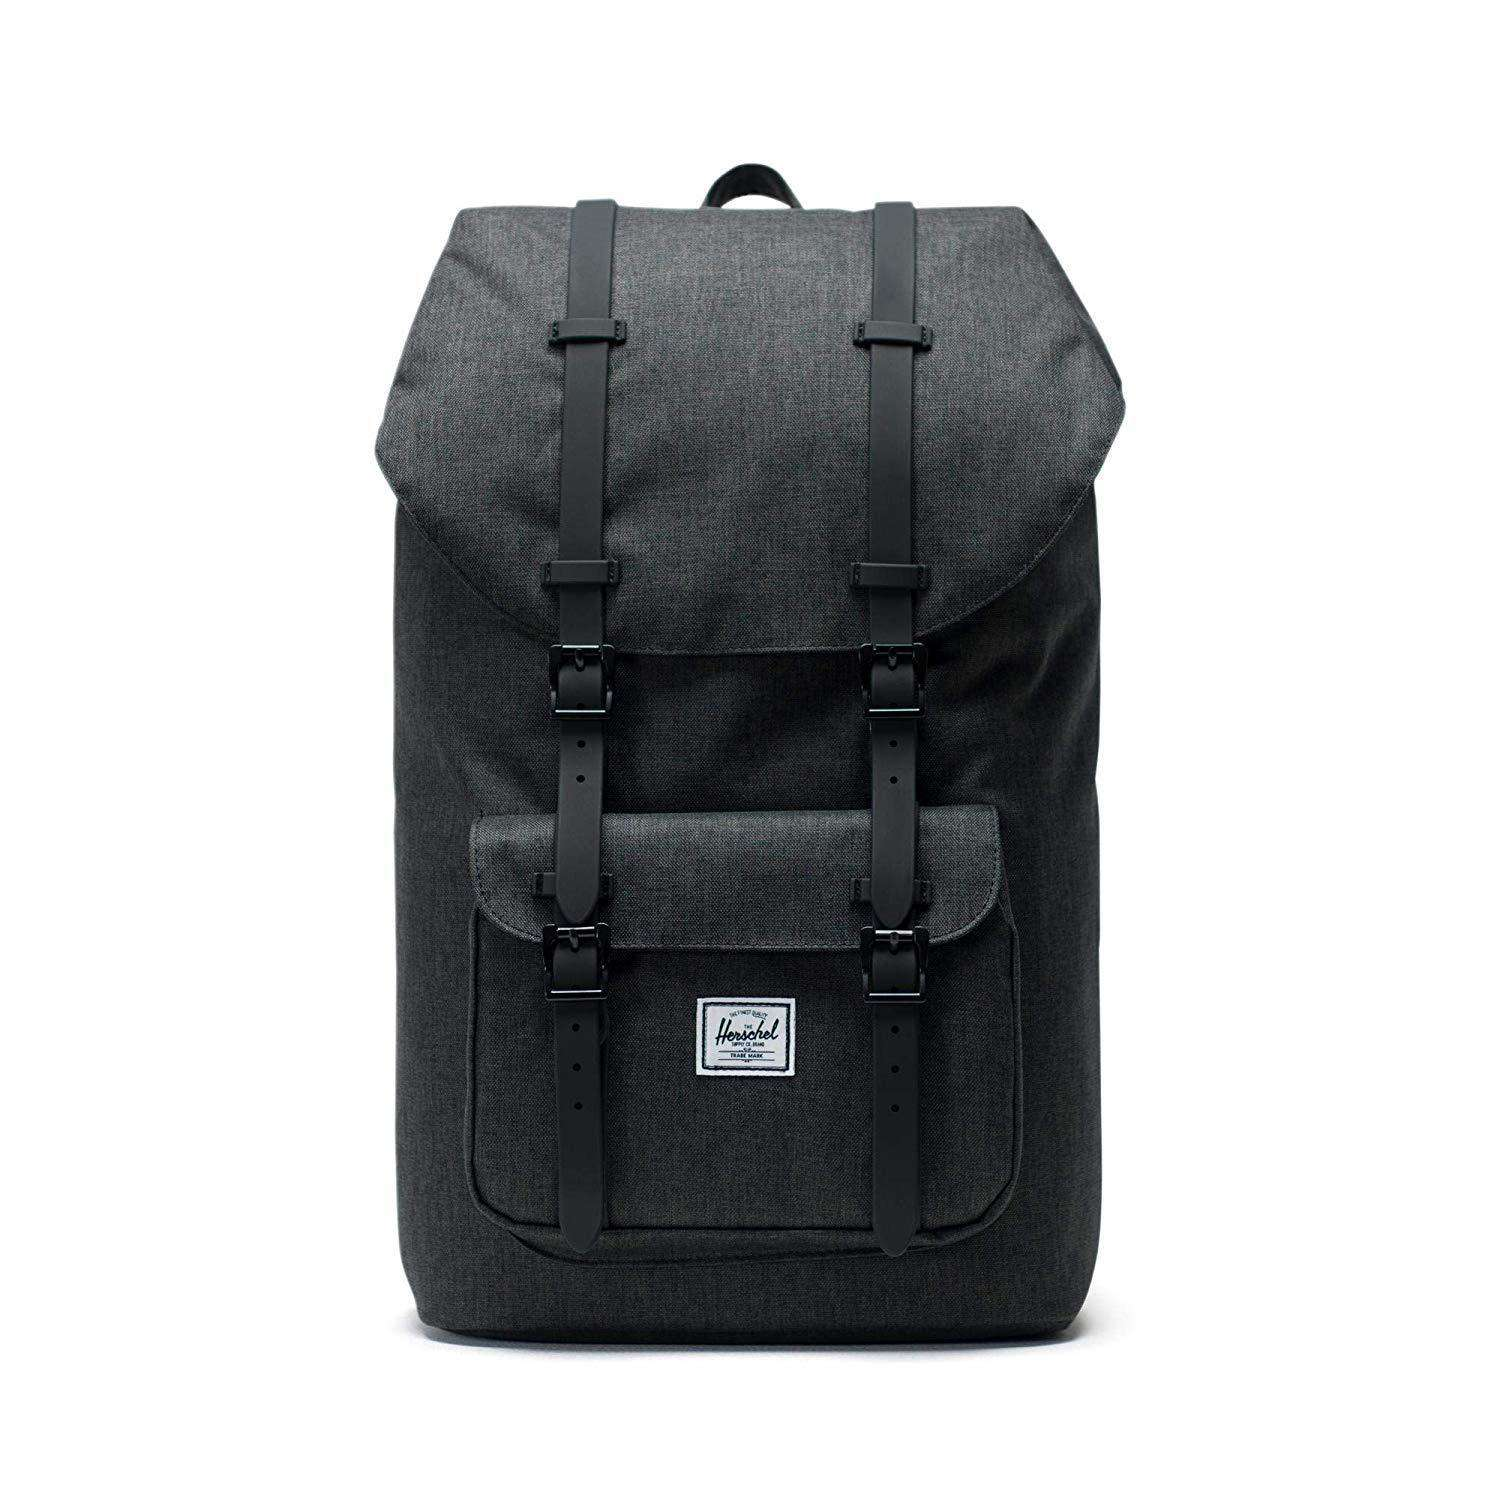 Herschel Little America Backpack Crosshatch/Black Umisfashion Store